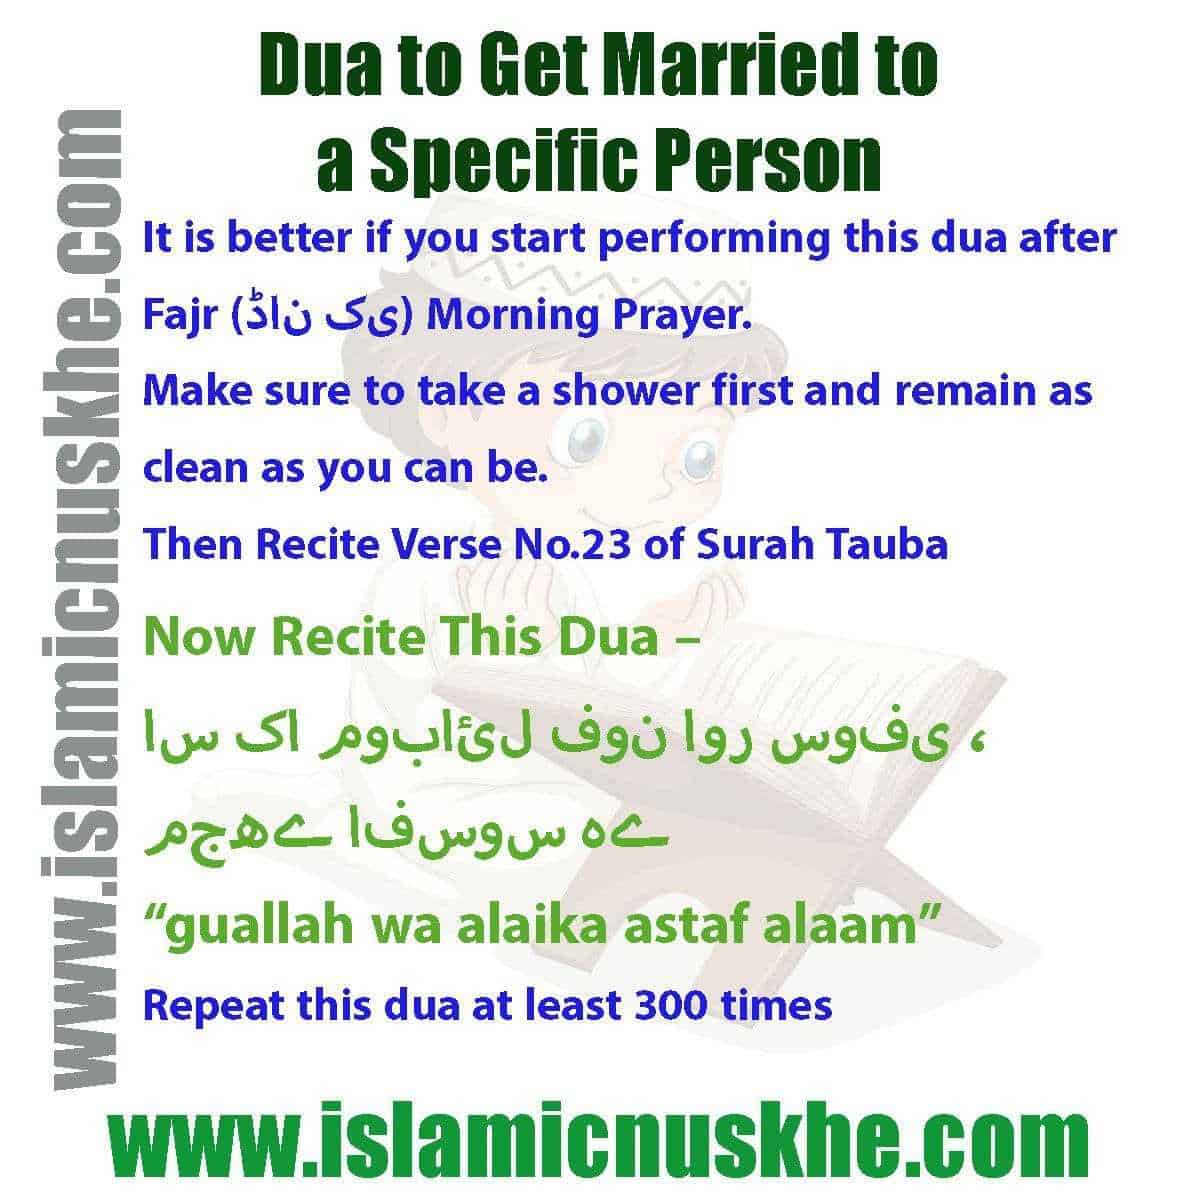 How To Perform Dua to Get Married to a Specific Person Step by Step -